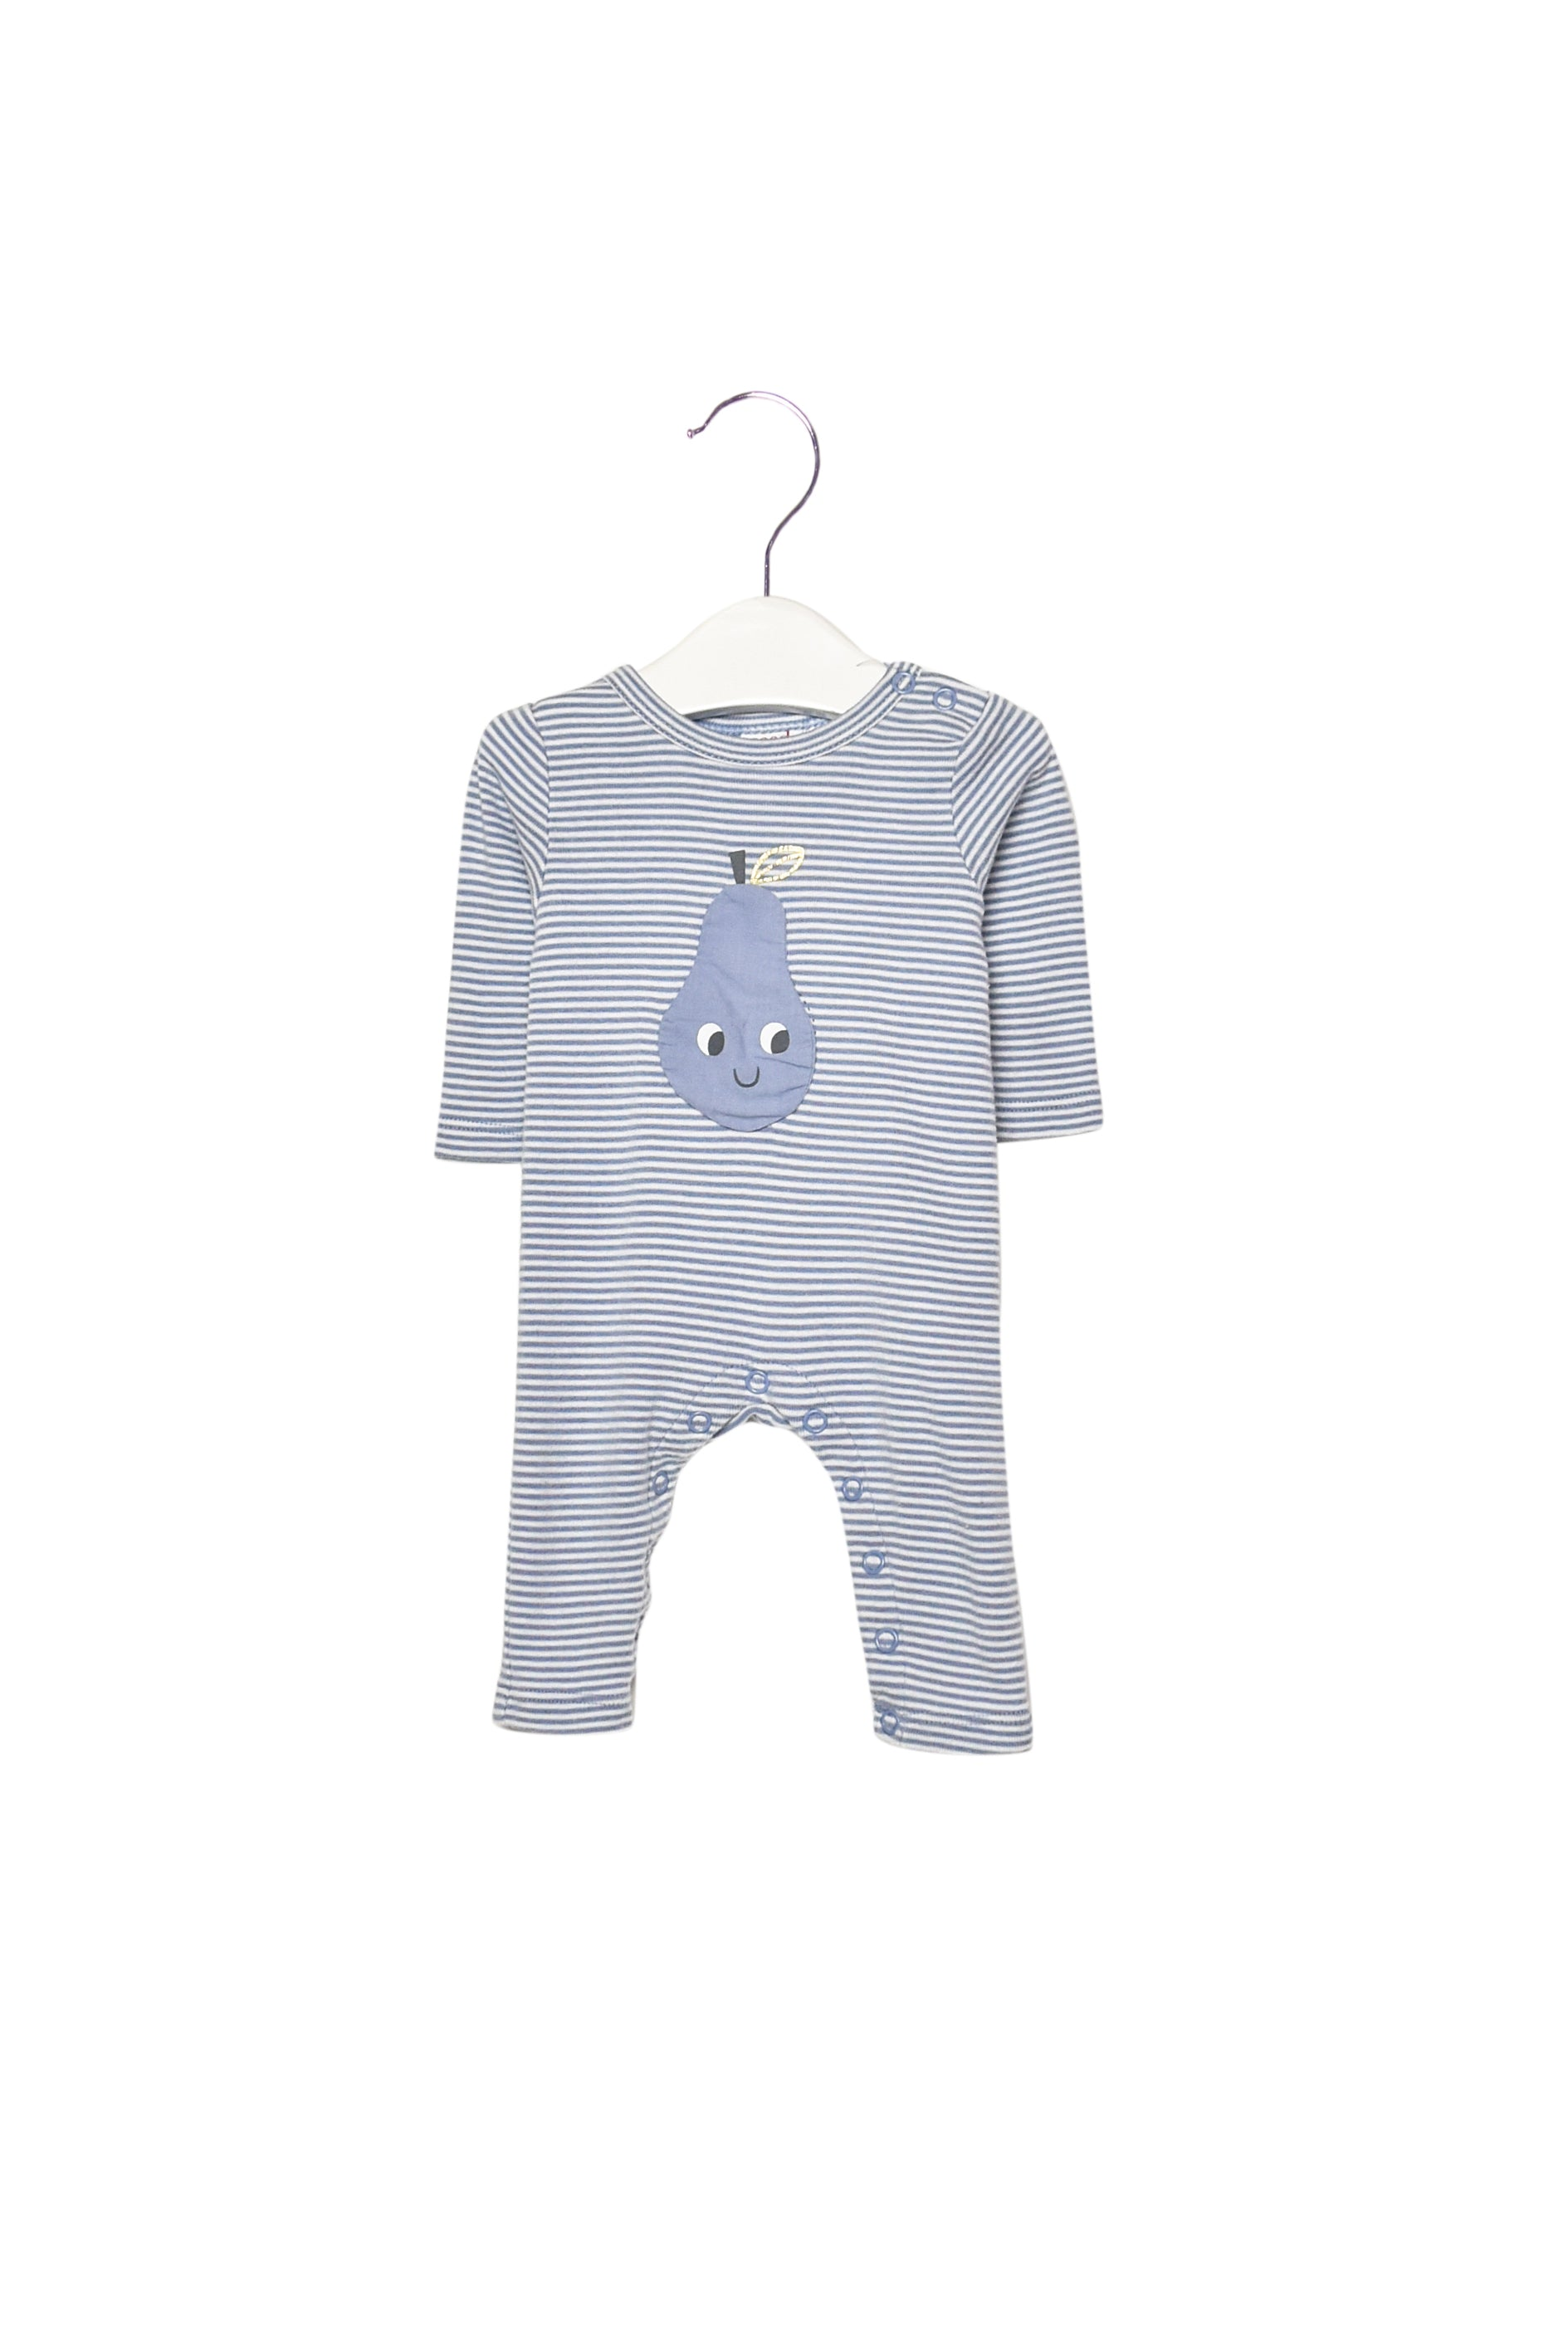 10011959 Seed Baby ~ Jumpsuit NB at Retykle